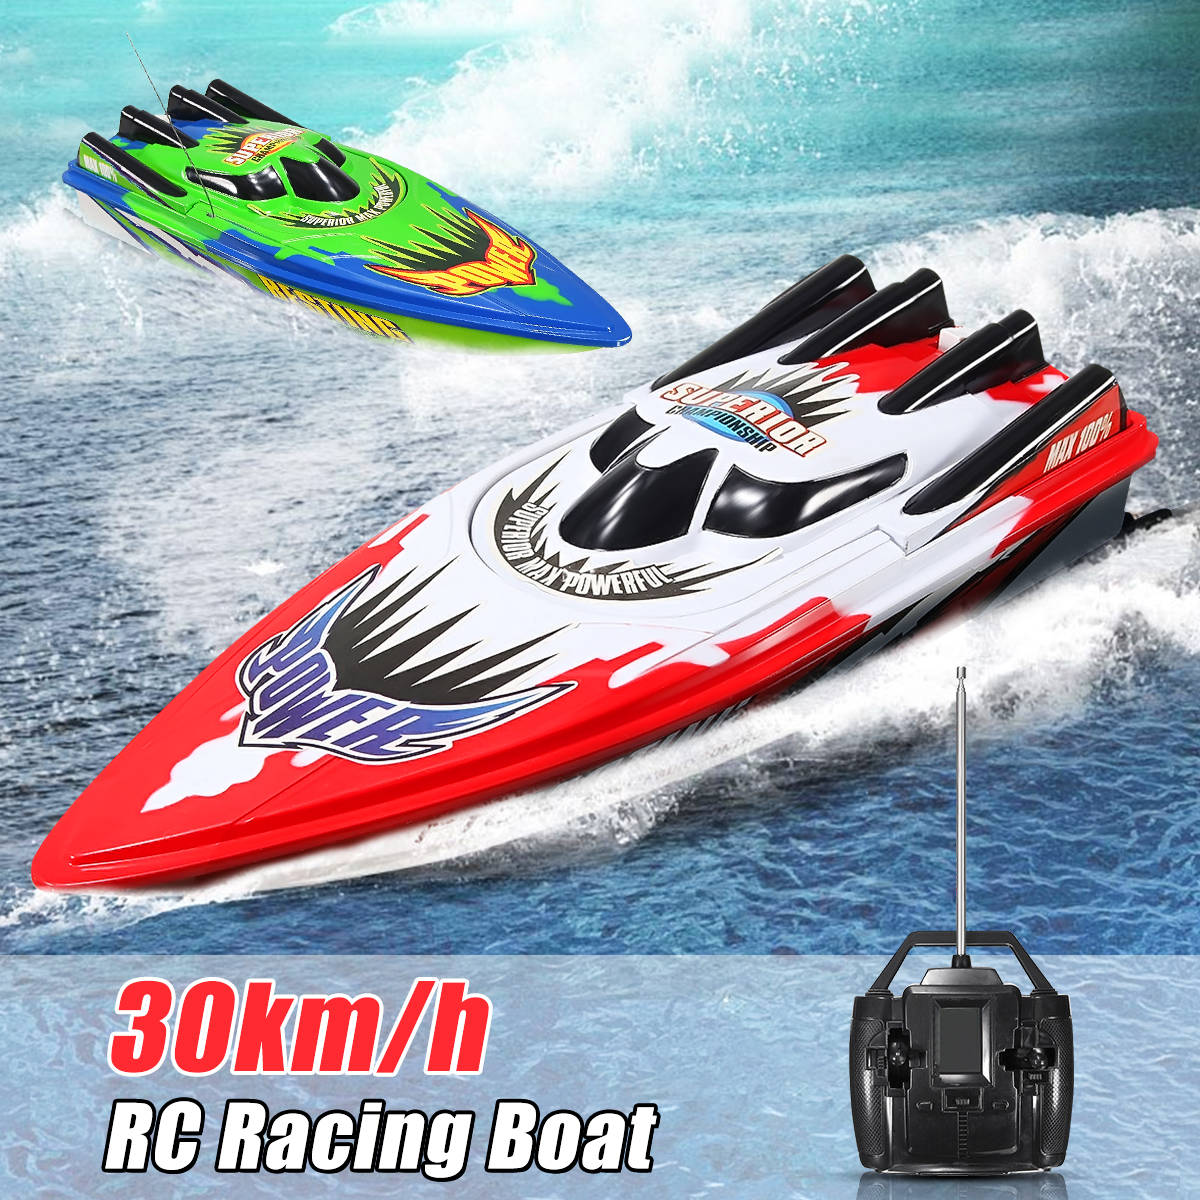 2 Color Radio Remote Control Twin Motor Speed Boat RC Racing Boat Toy Kids Children by